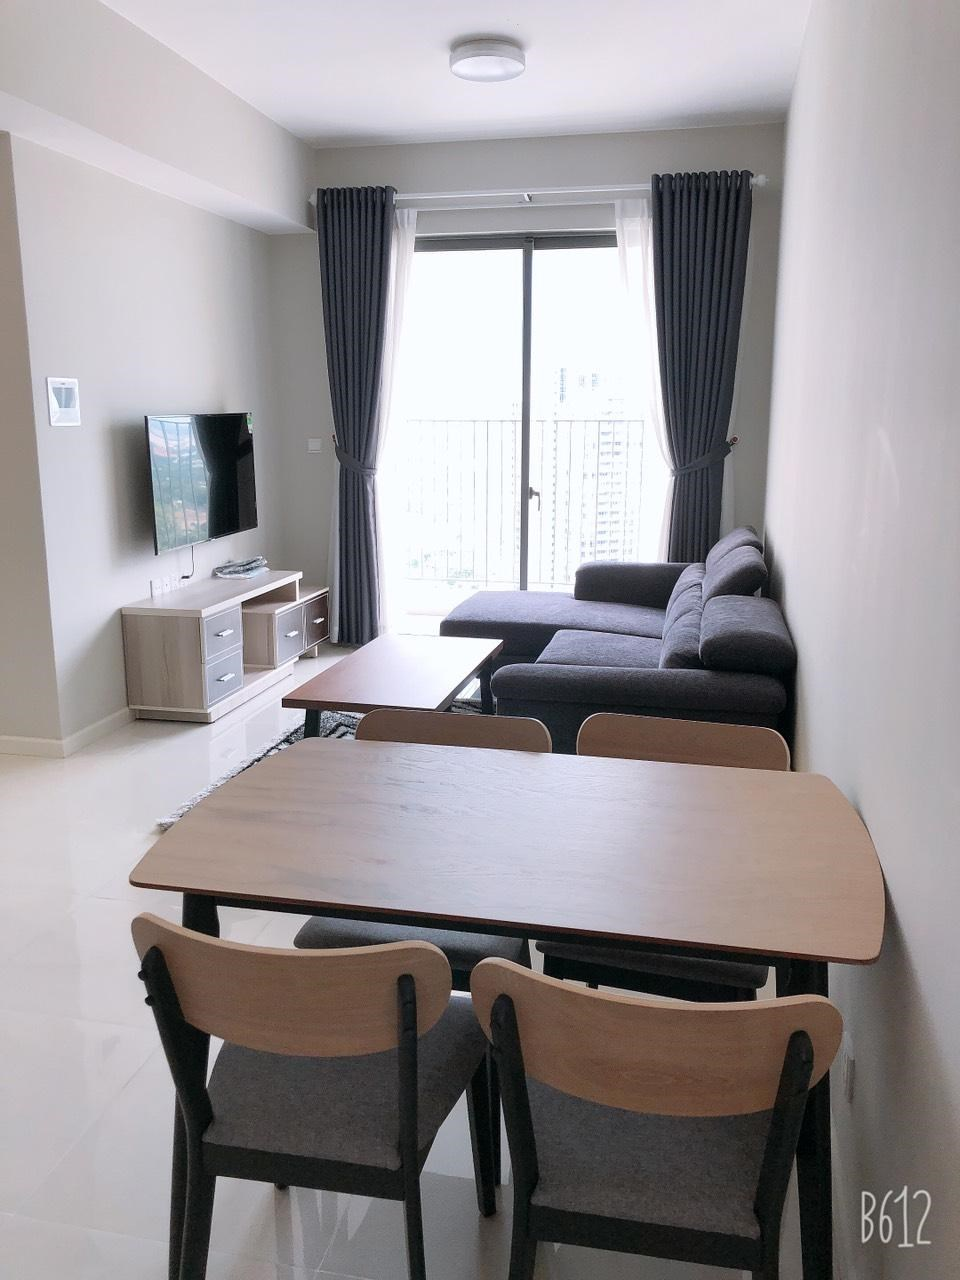 MAP95285 - Apartment for rent - Masteri An Phu - 2 bedroom